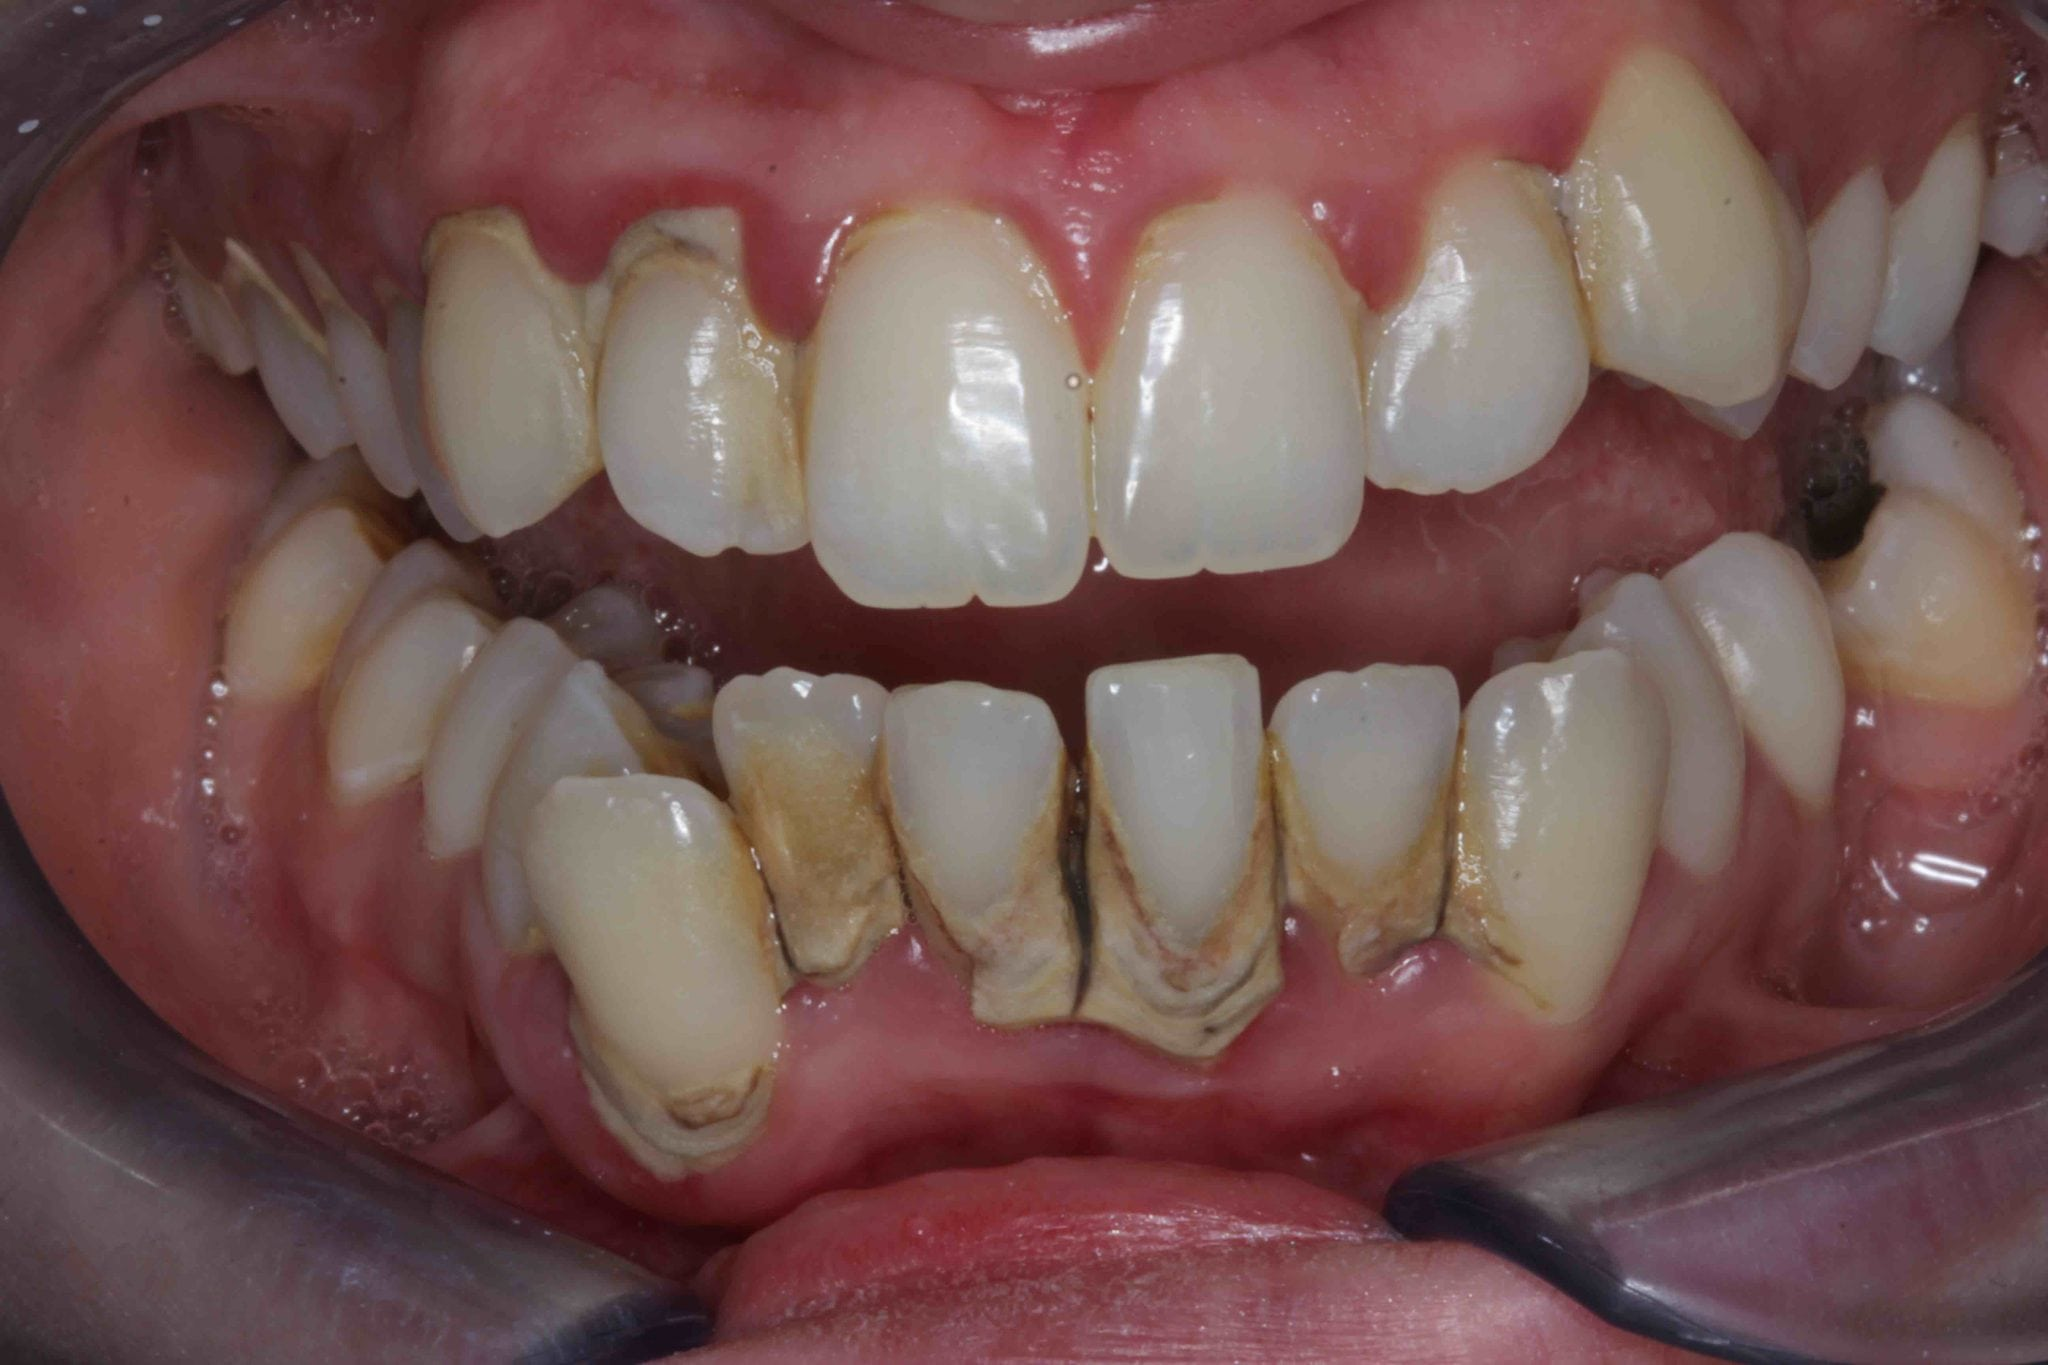 misaligned teeth treatment with porcelain veneers before photos